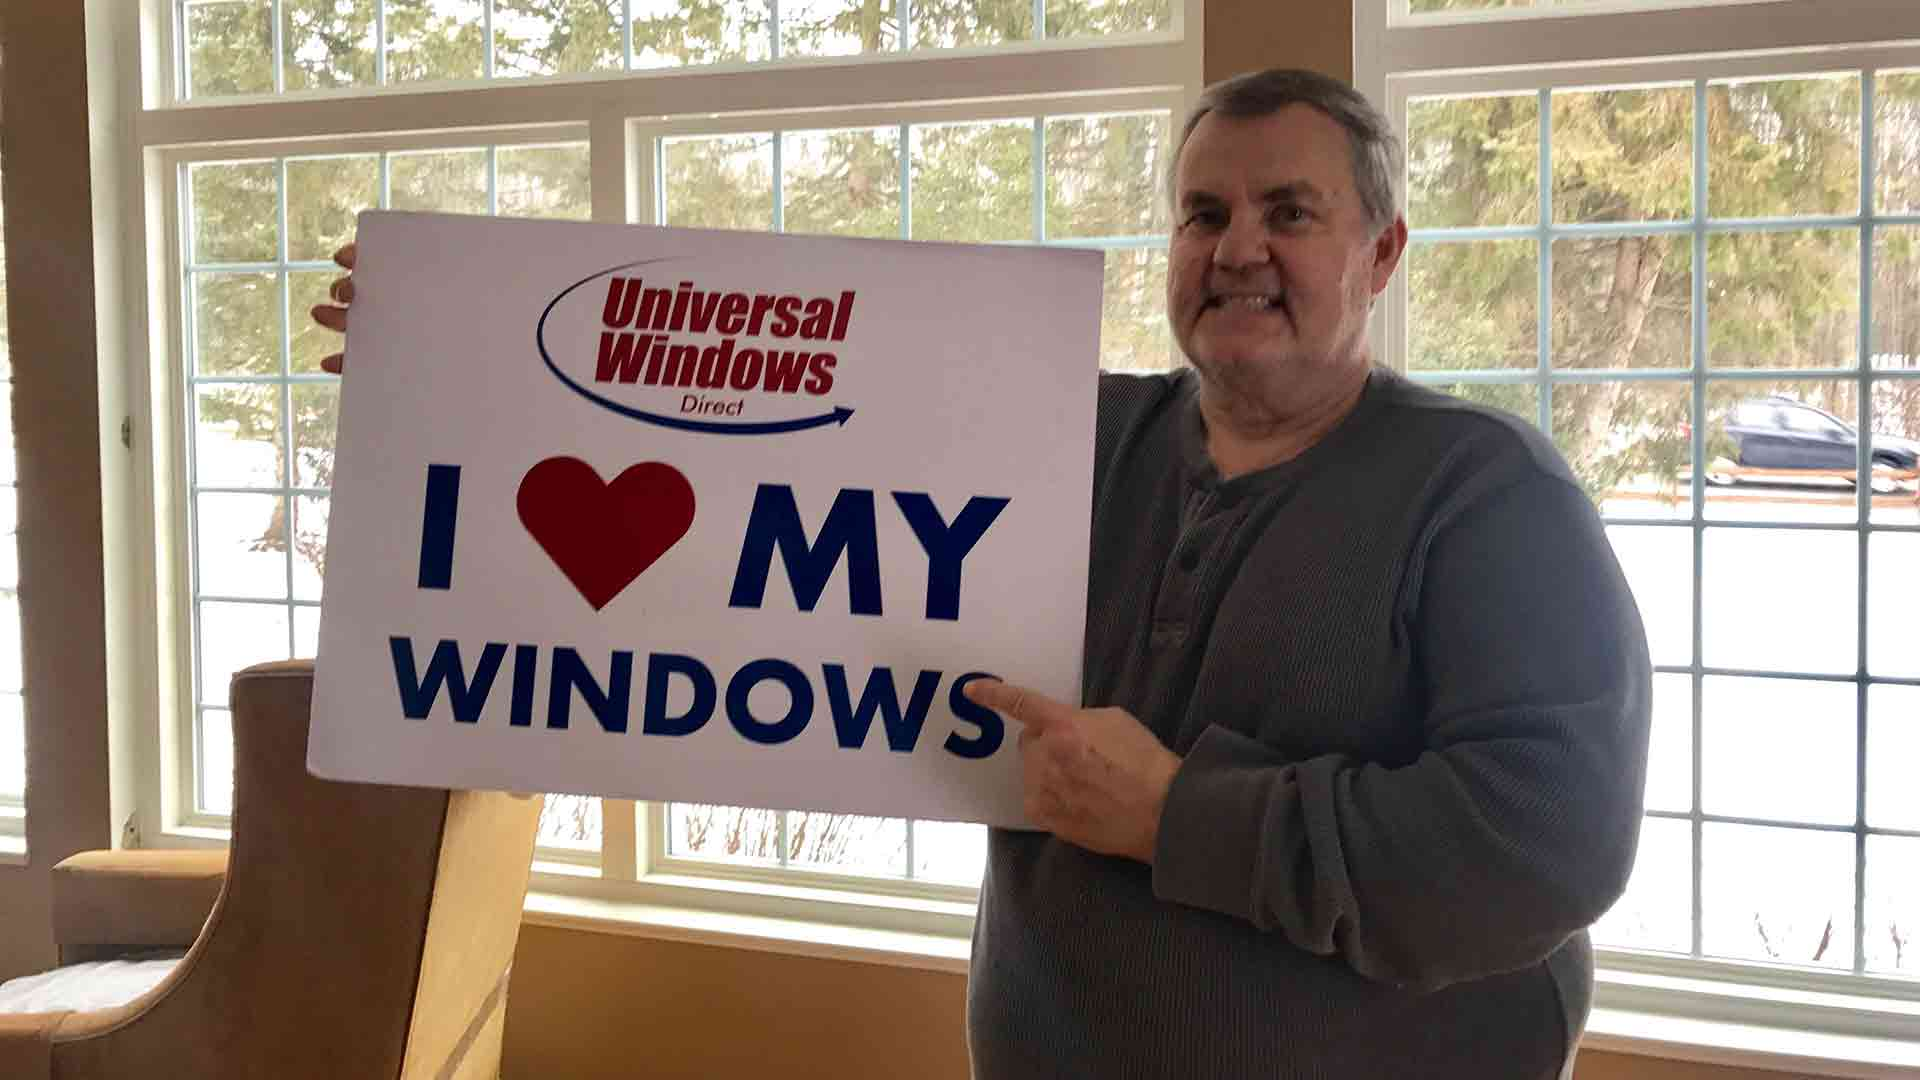 jack s wholesale windows vinyl happy homeowner success stories how exterior remodeling is improving lives replacement windows charlotte nc entry door